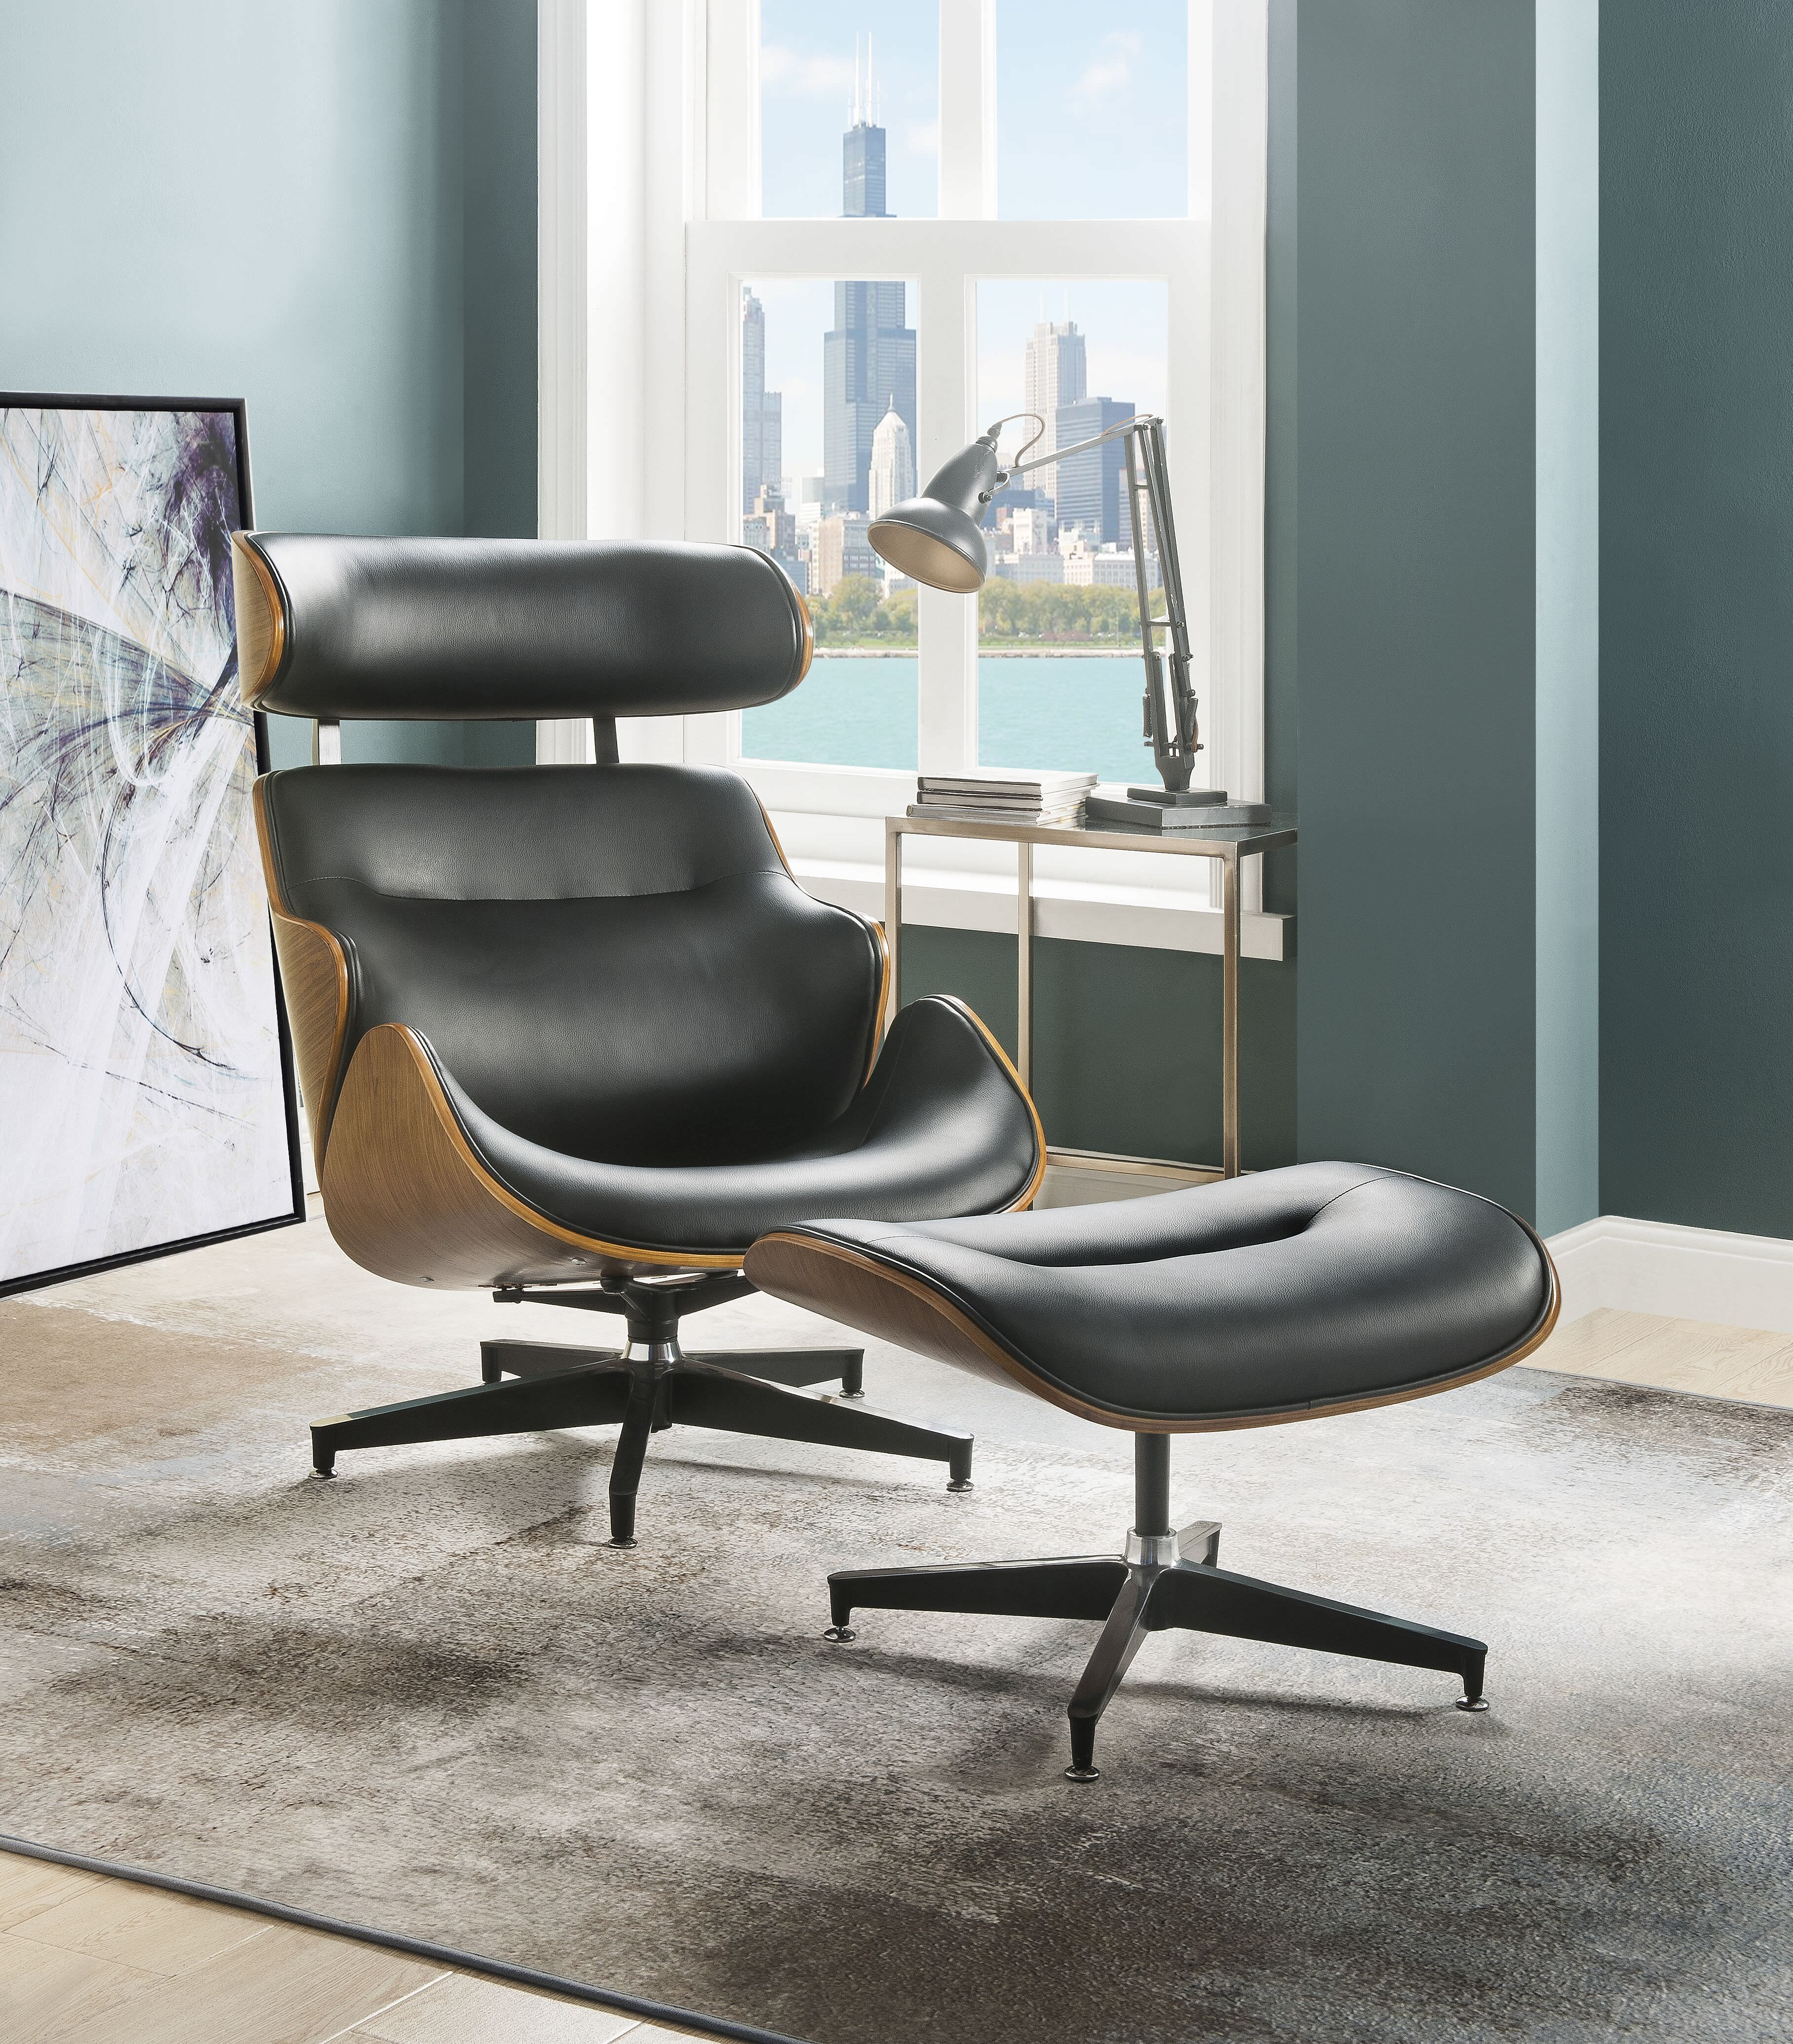 Pin on Chair and ottoman